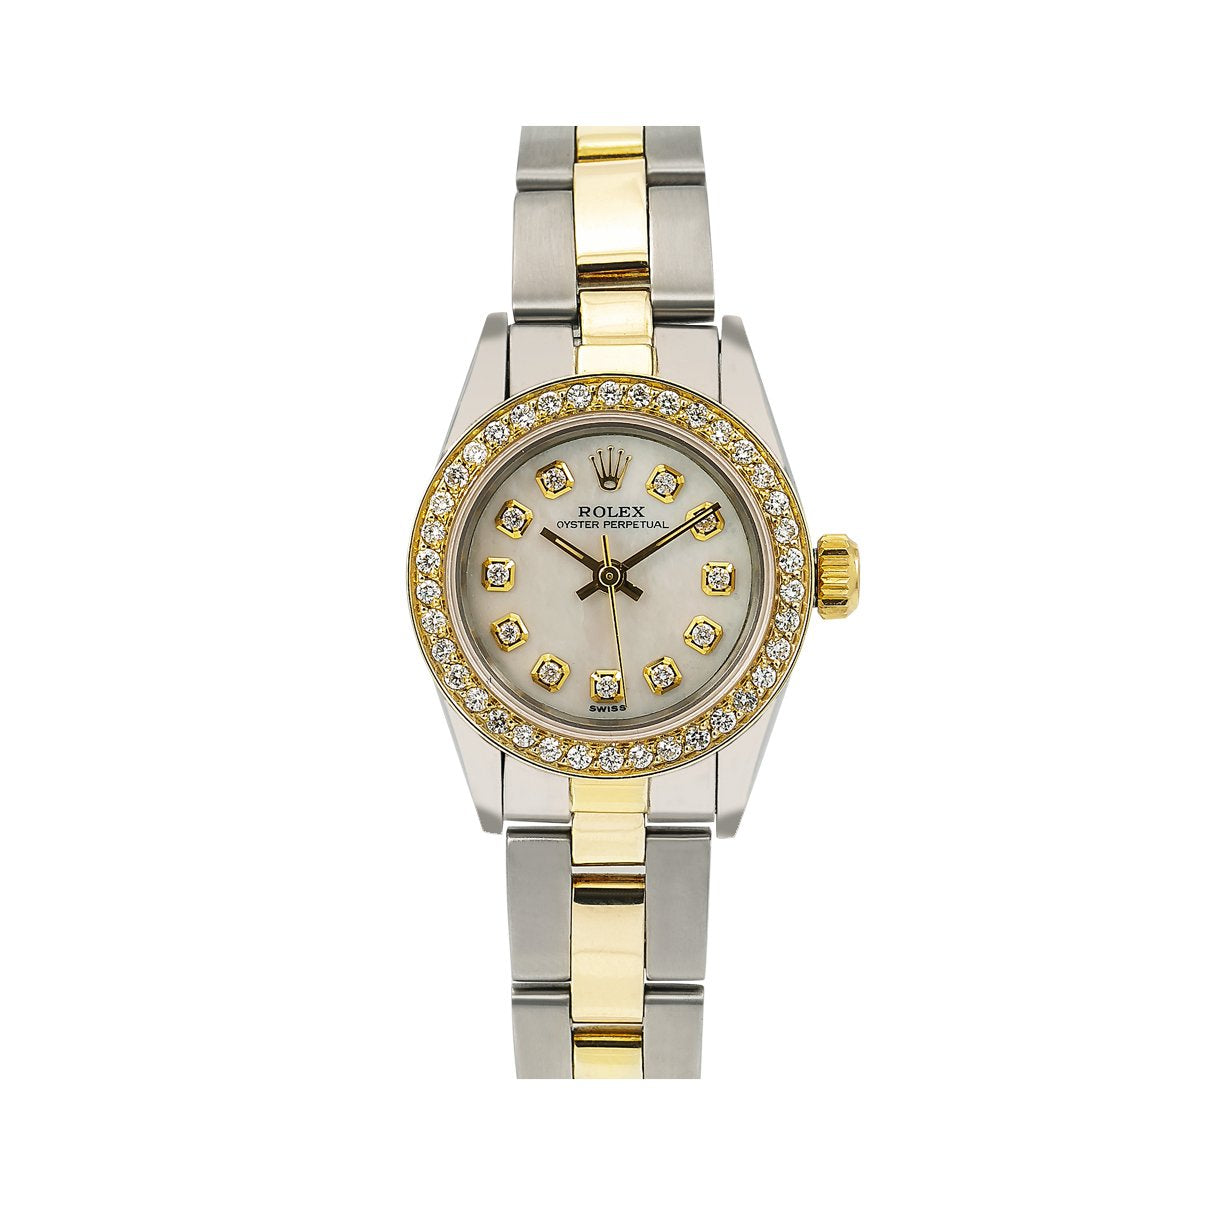 Rolex Oyster Perpetual Diamond Watch, 24mm, White Diamond Dial With 0.90 CT Diamonds